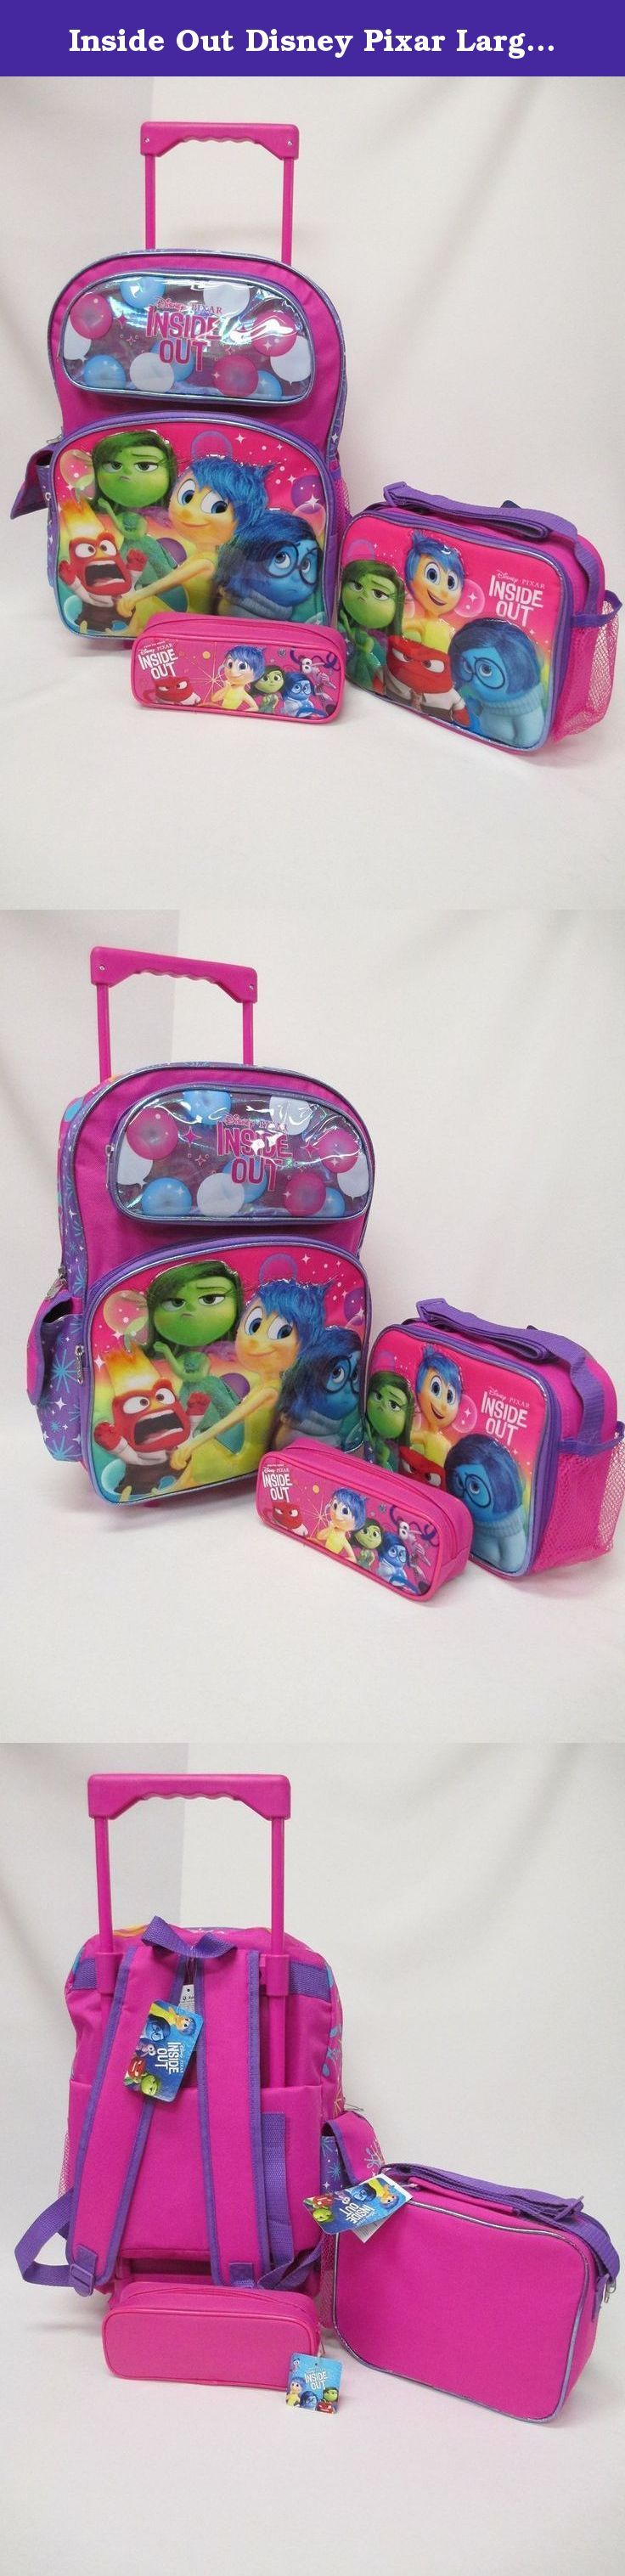 "Inside Out Disney Pixar Large 16"" Rolling Backpack Roller Book Bag, Lunch Box & Pencil Pouch. Inside Out Rolling Backpack Set!. Rolling Backpack. Lunchbox. Pencil Pouch. This complete set is offered by seller Bag2School."